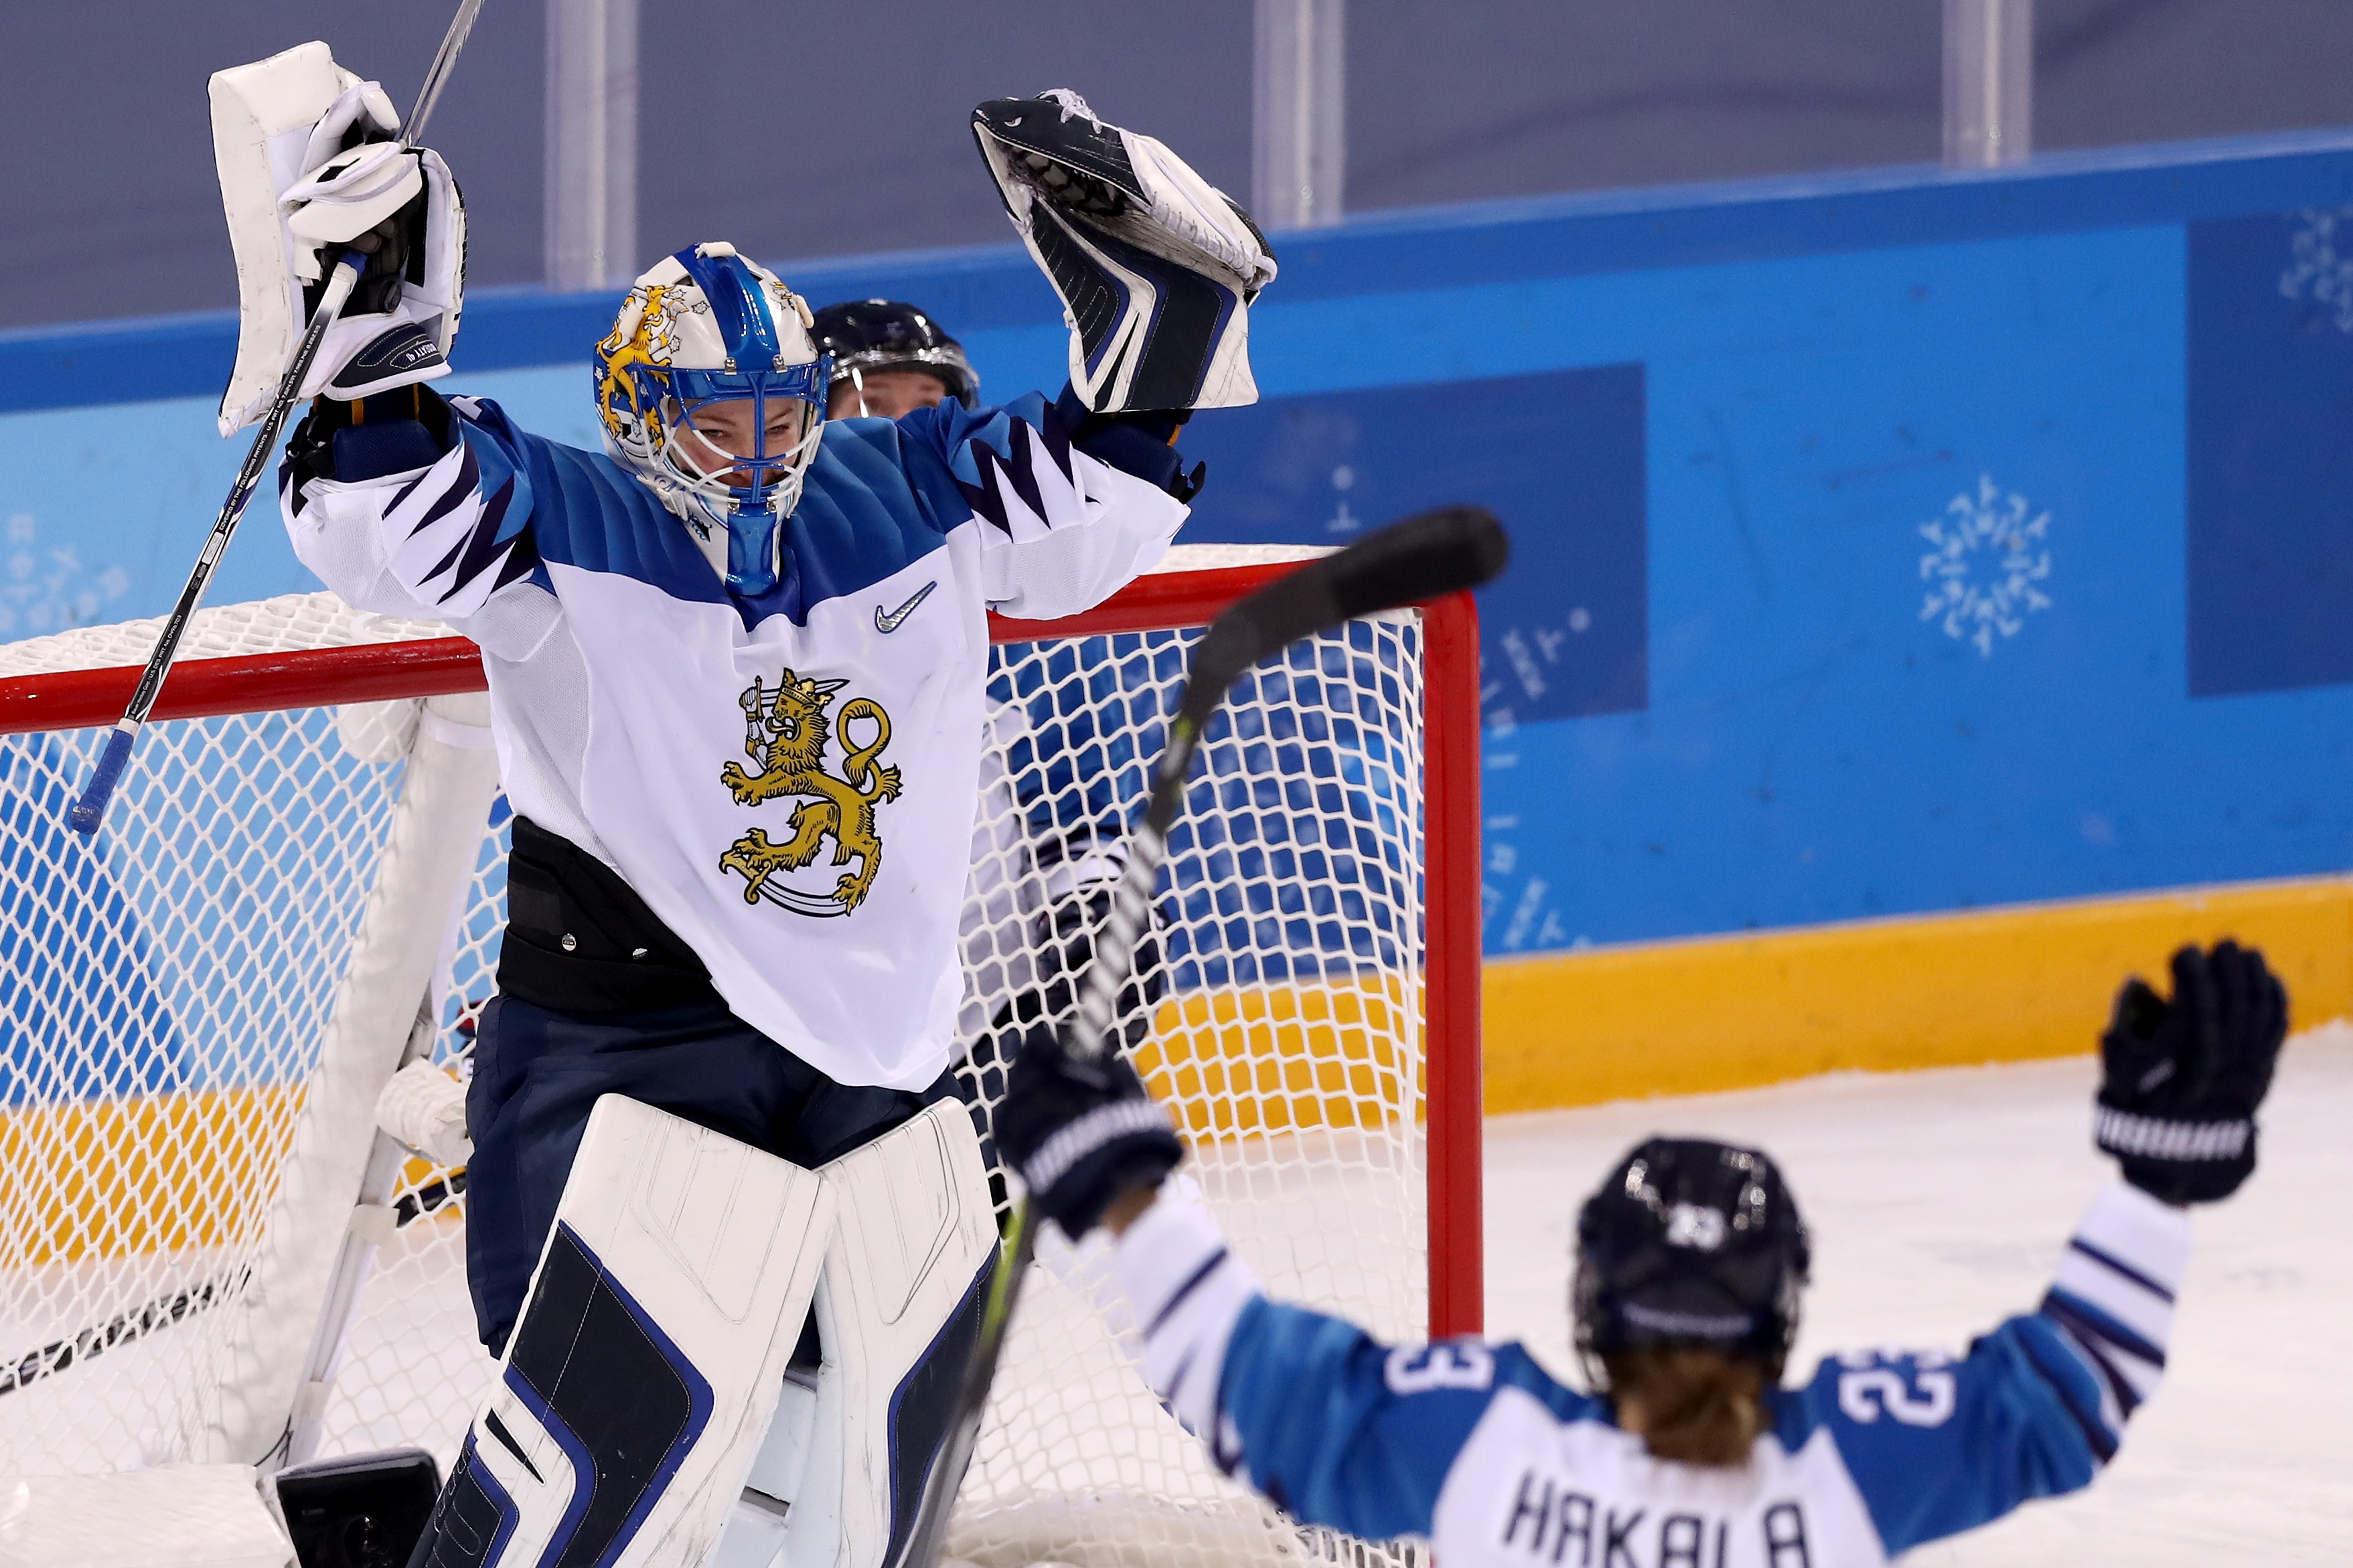 Noora Raty #41 of Finland celebrates with her teammates after defeating Team Sweden during the Ice Hockey Women's Play-offs Quarterfinals